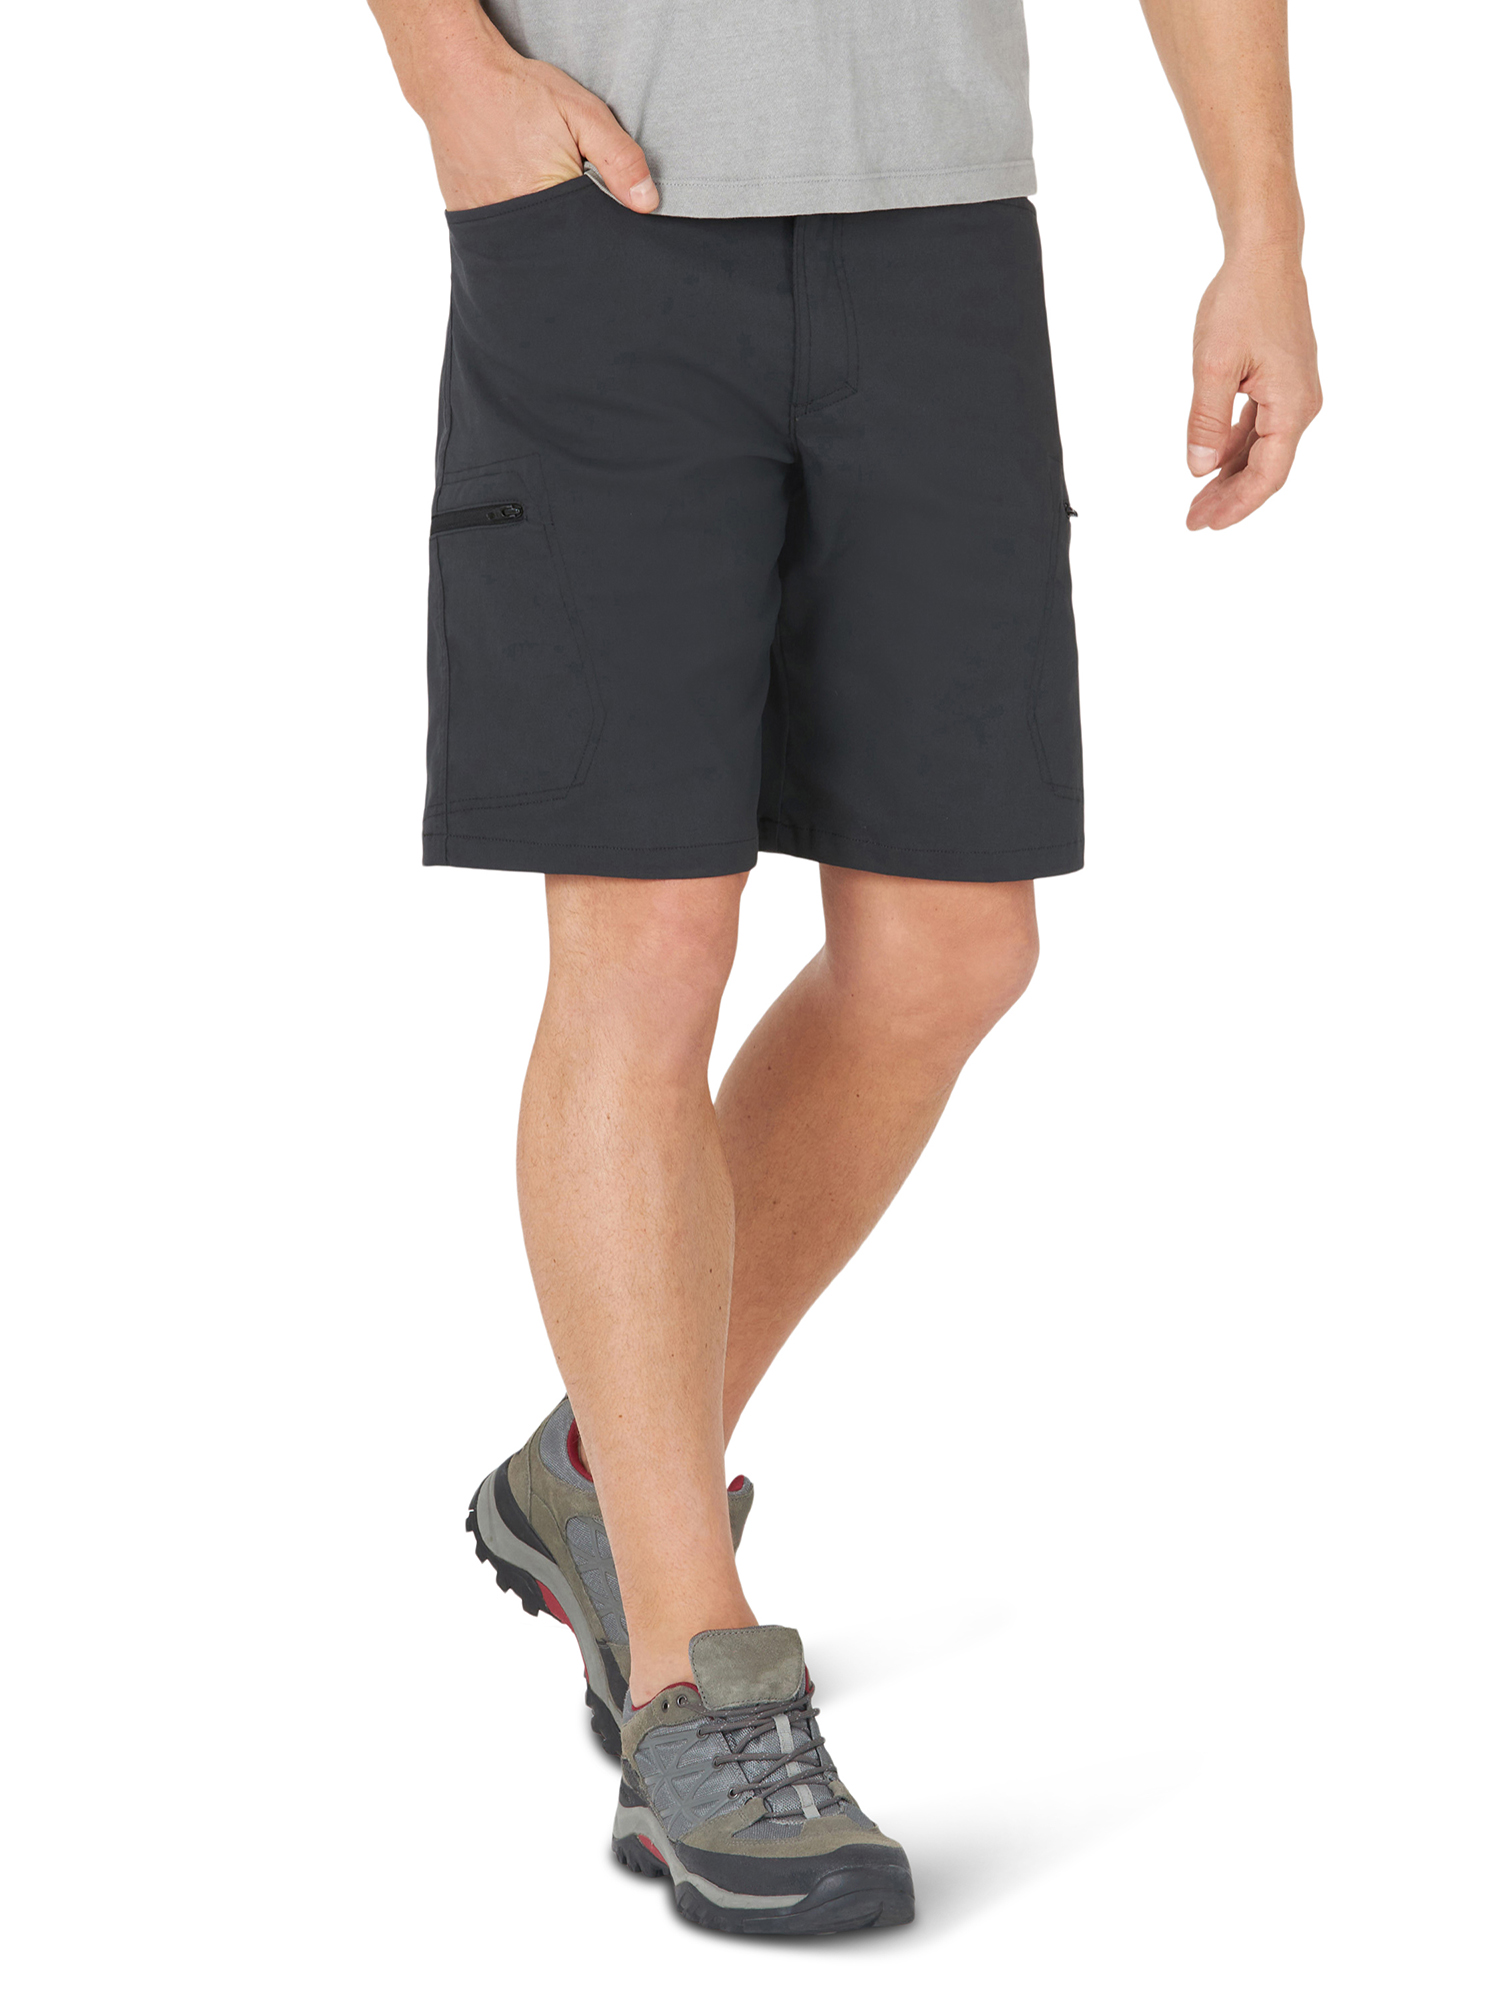 Wrangler Mens Shorts Relaxed Fit Cargo Outdoor Performance